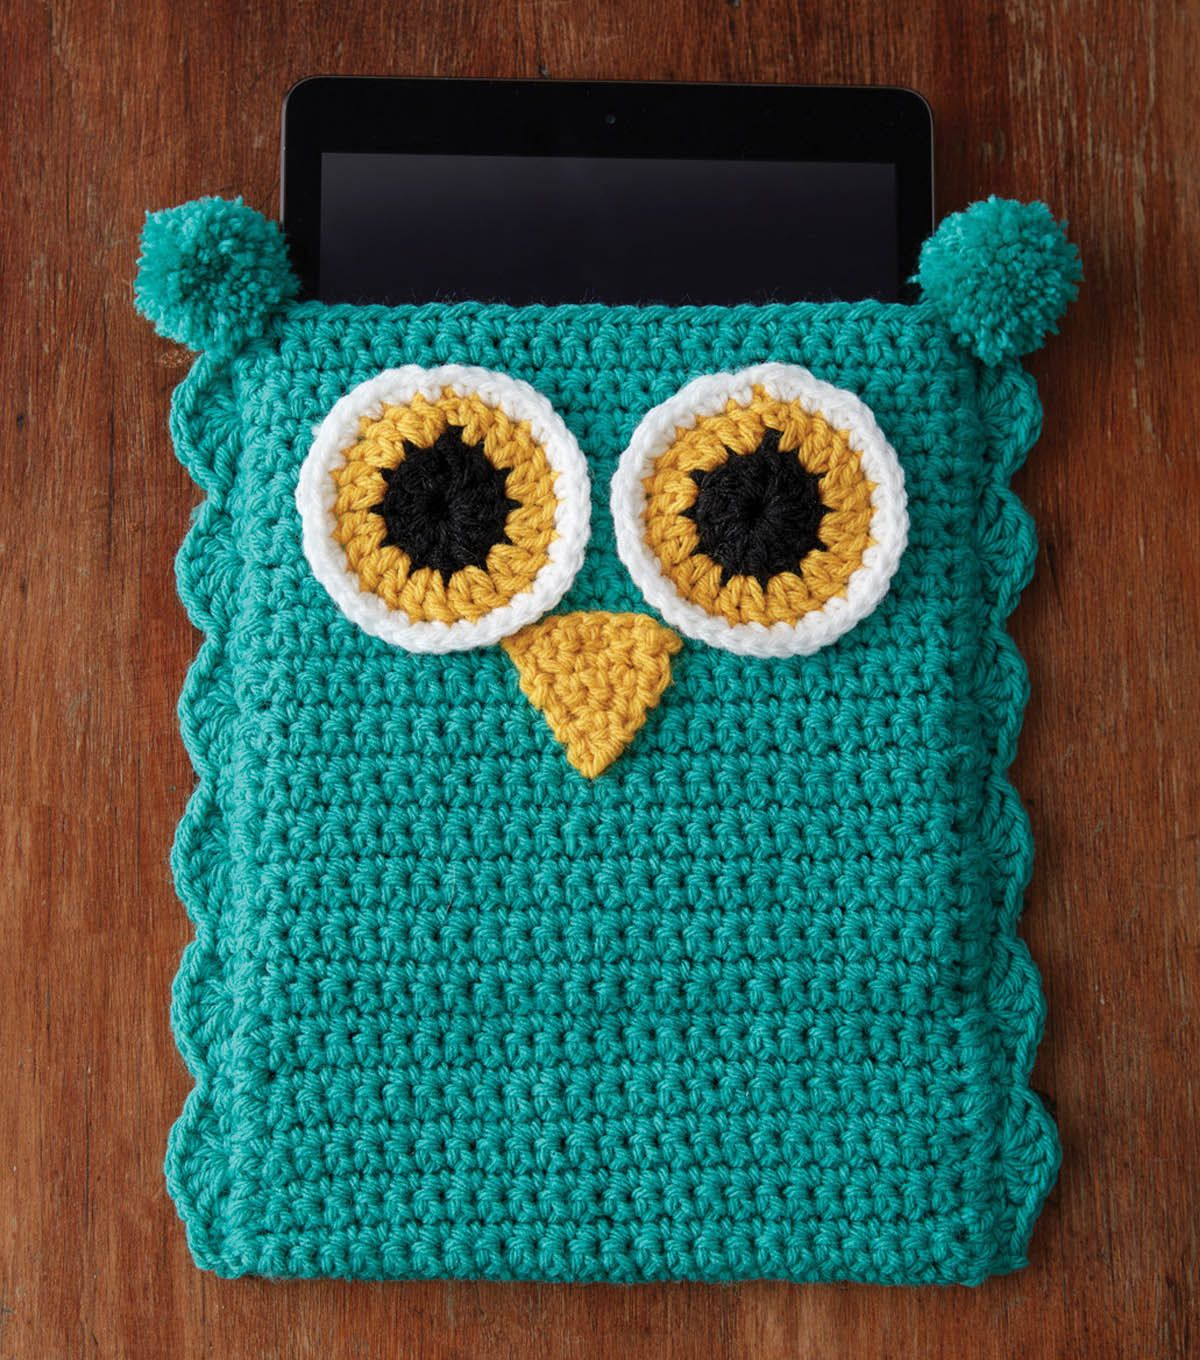 Cute owl tablet cover free crochet pattern pinteres cute owl tablet cover free crochet pattern more bankloansurffo Image collections